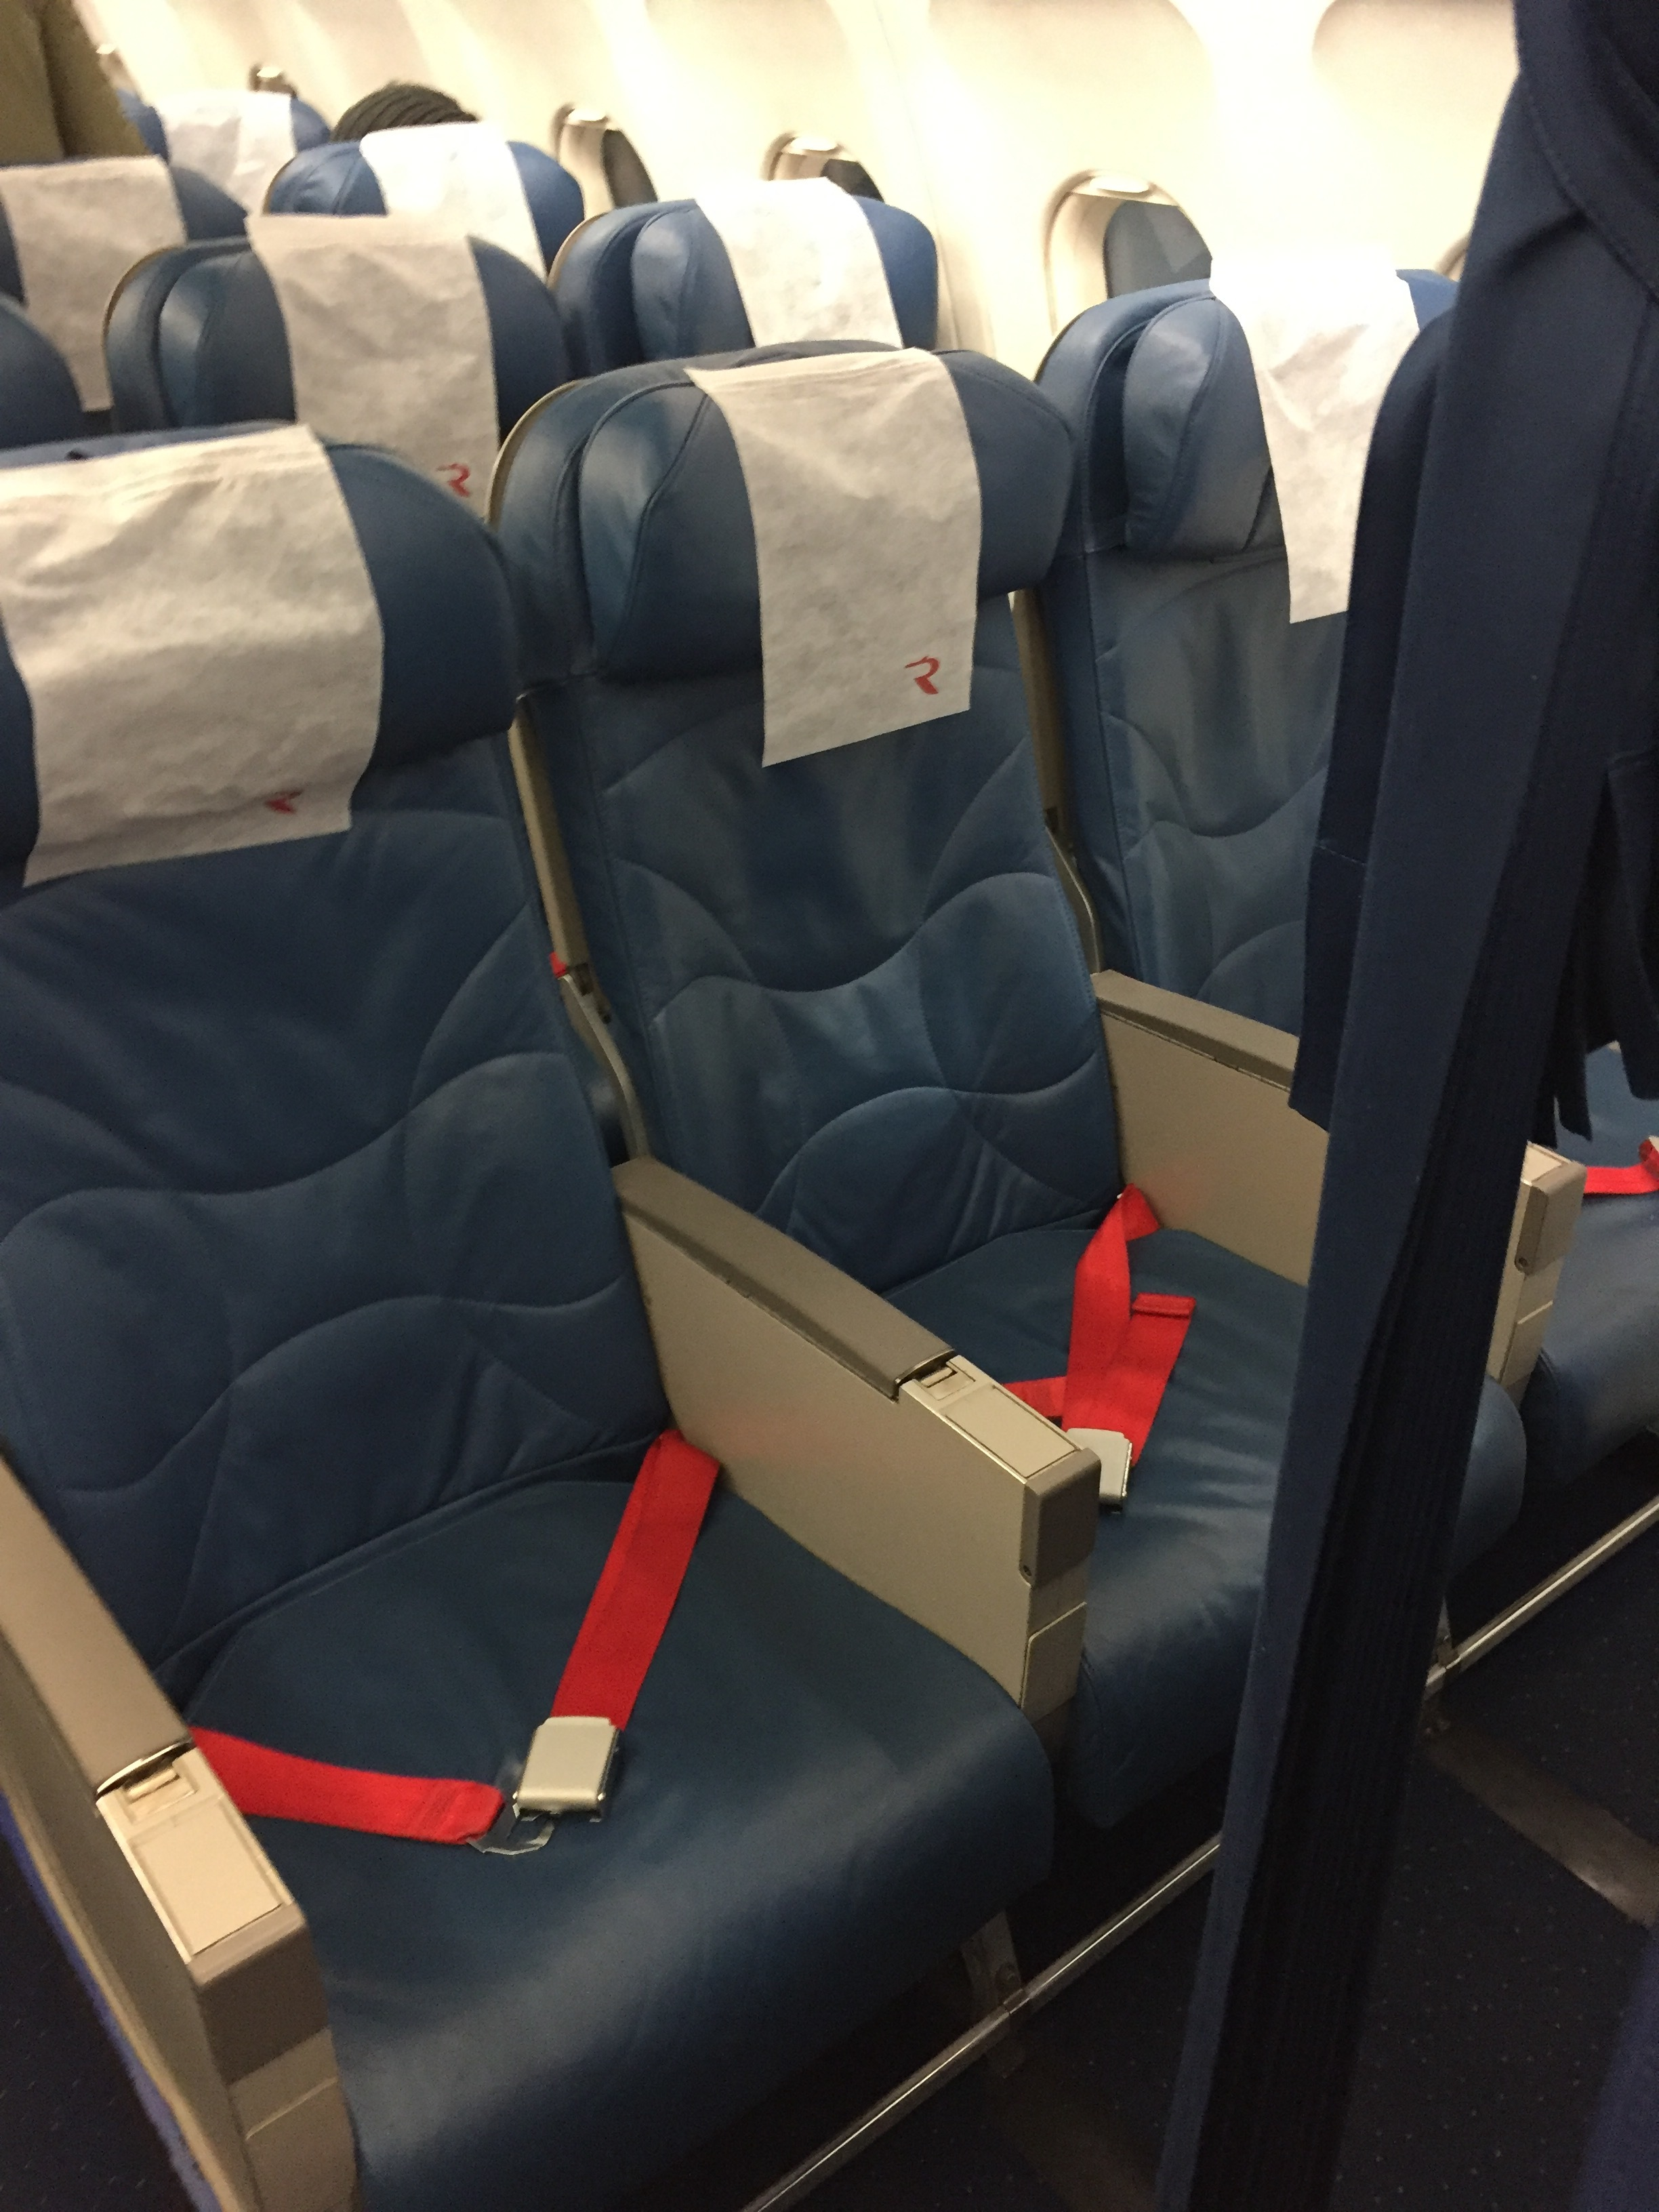 This is already the economy class cabin...